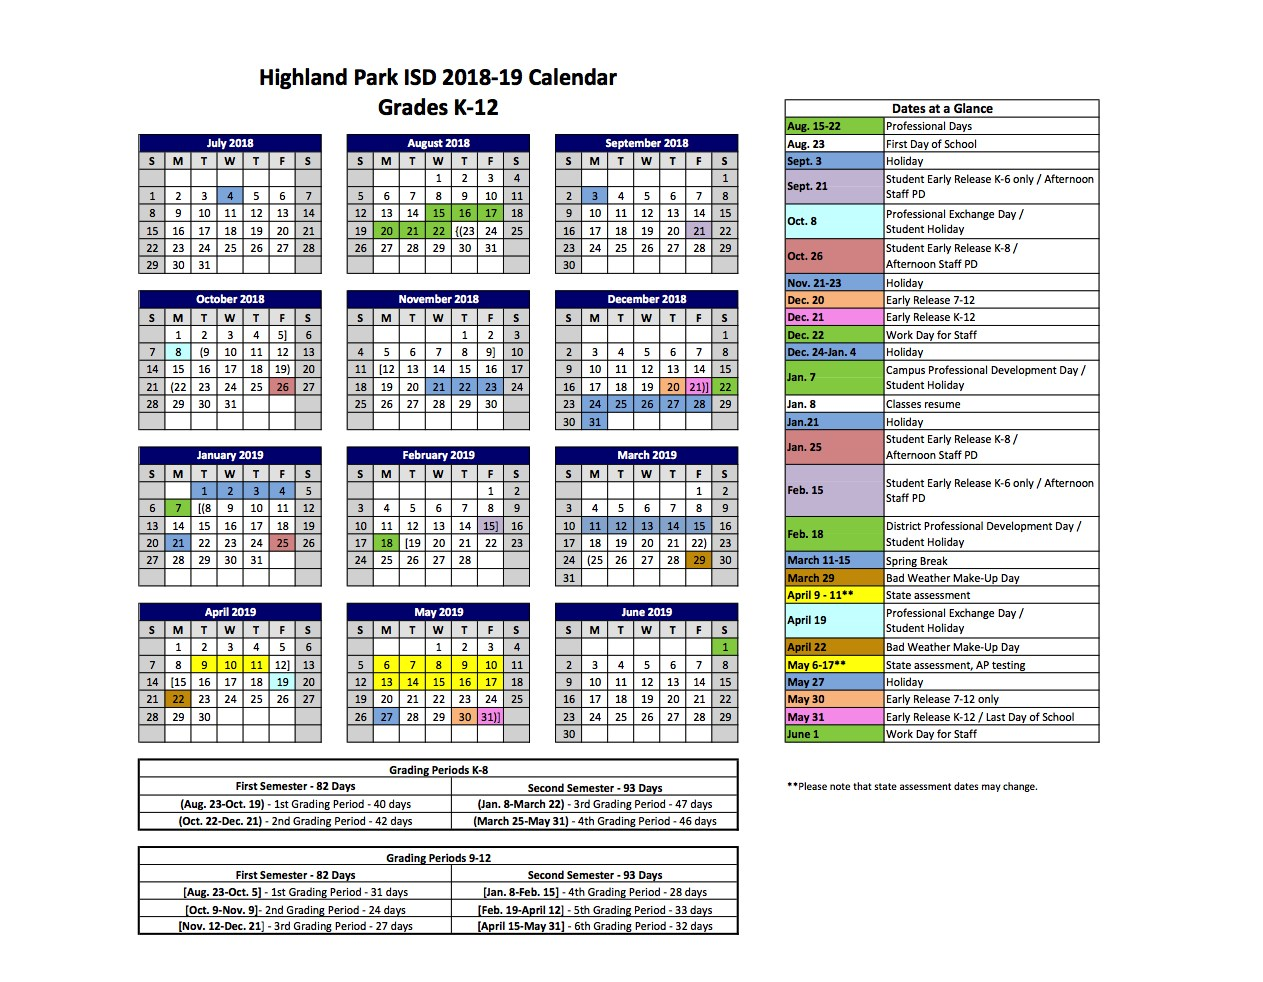 2018 2019 Hpisd Calendars Calendars Highland Park Independent